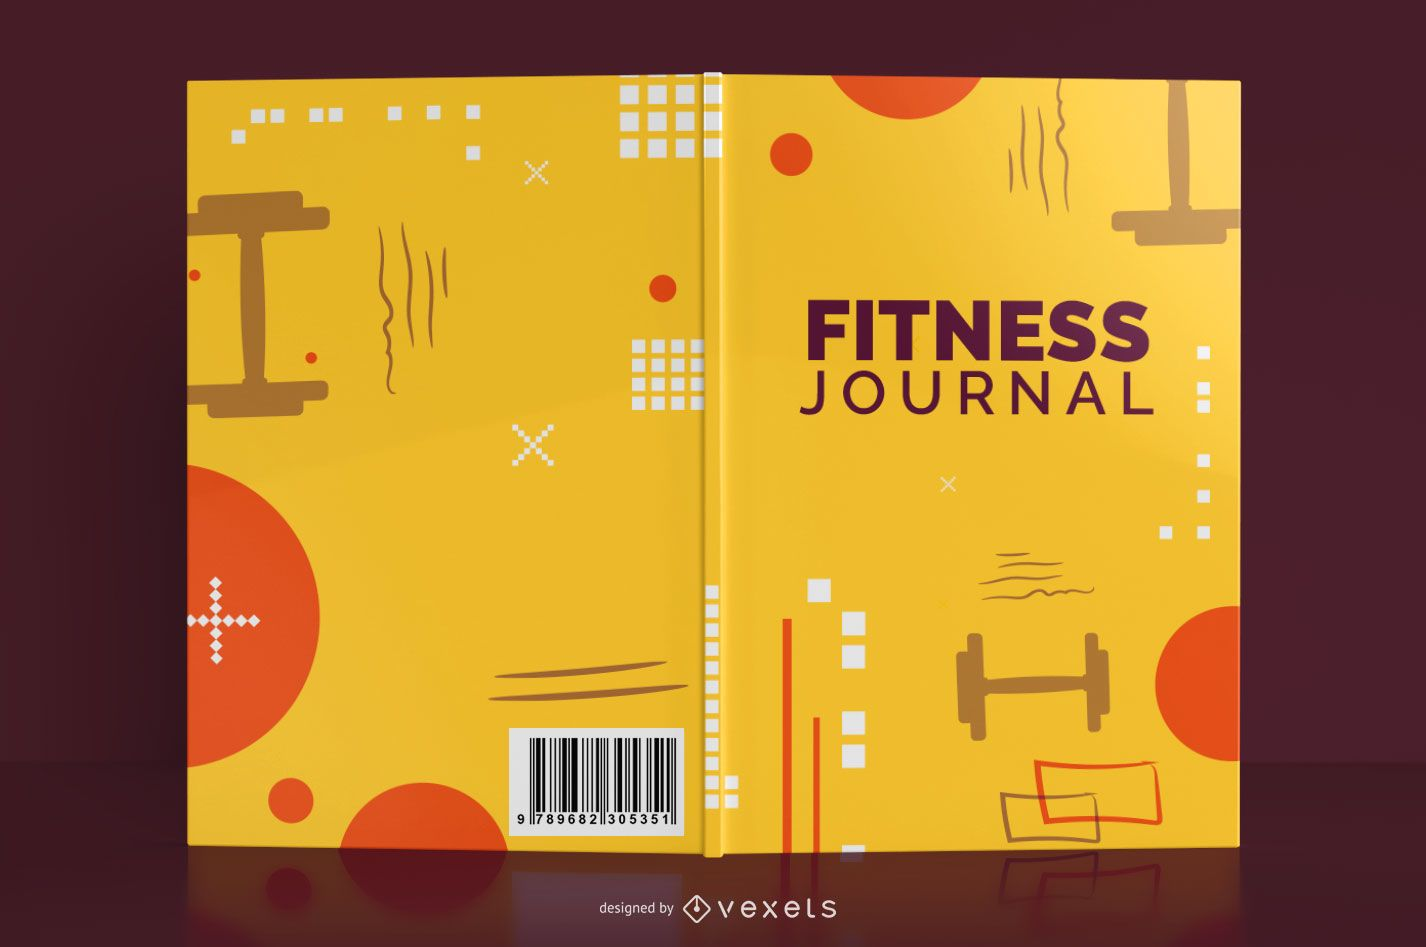 Fitness journal book cover design